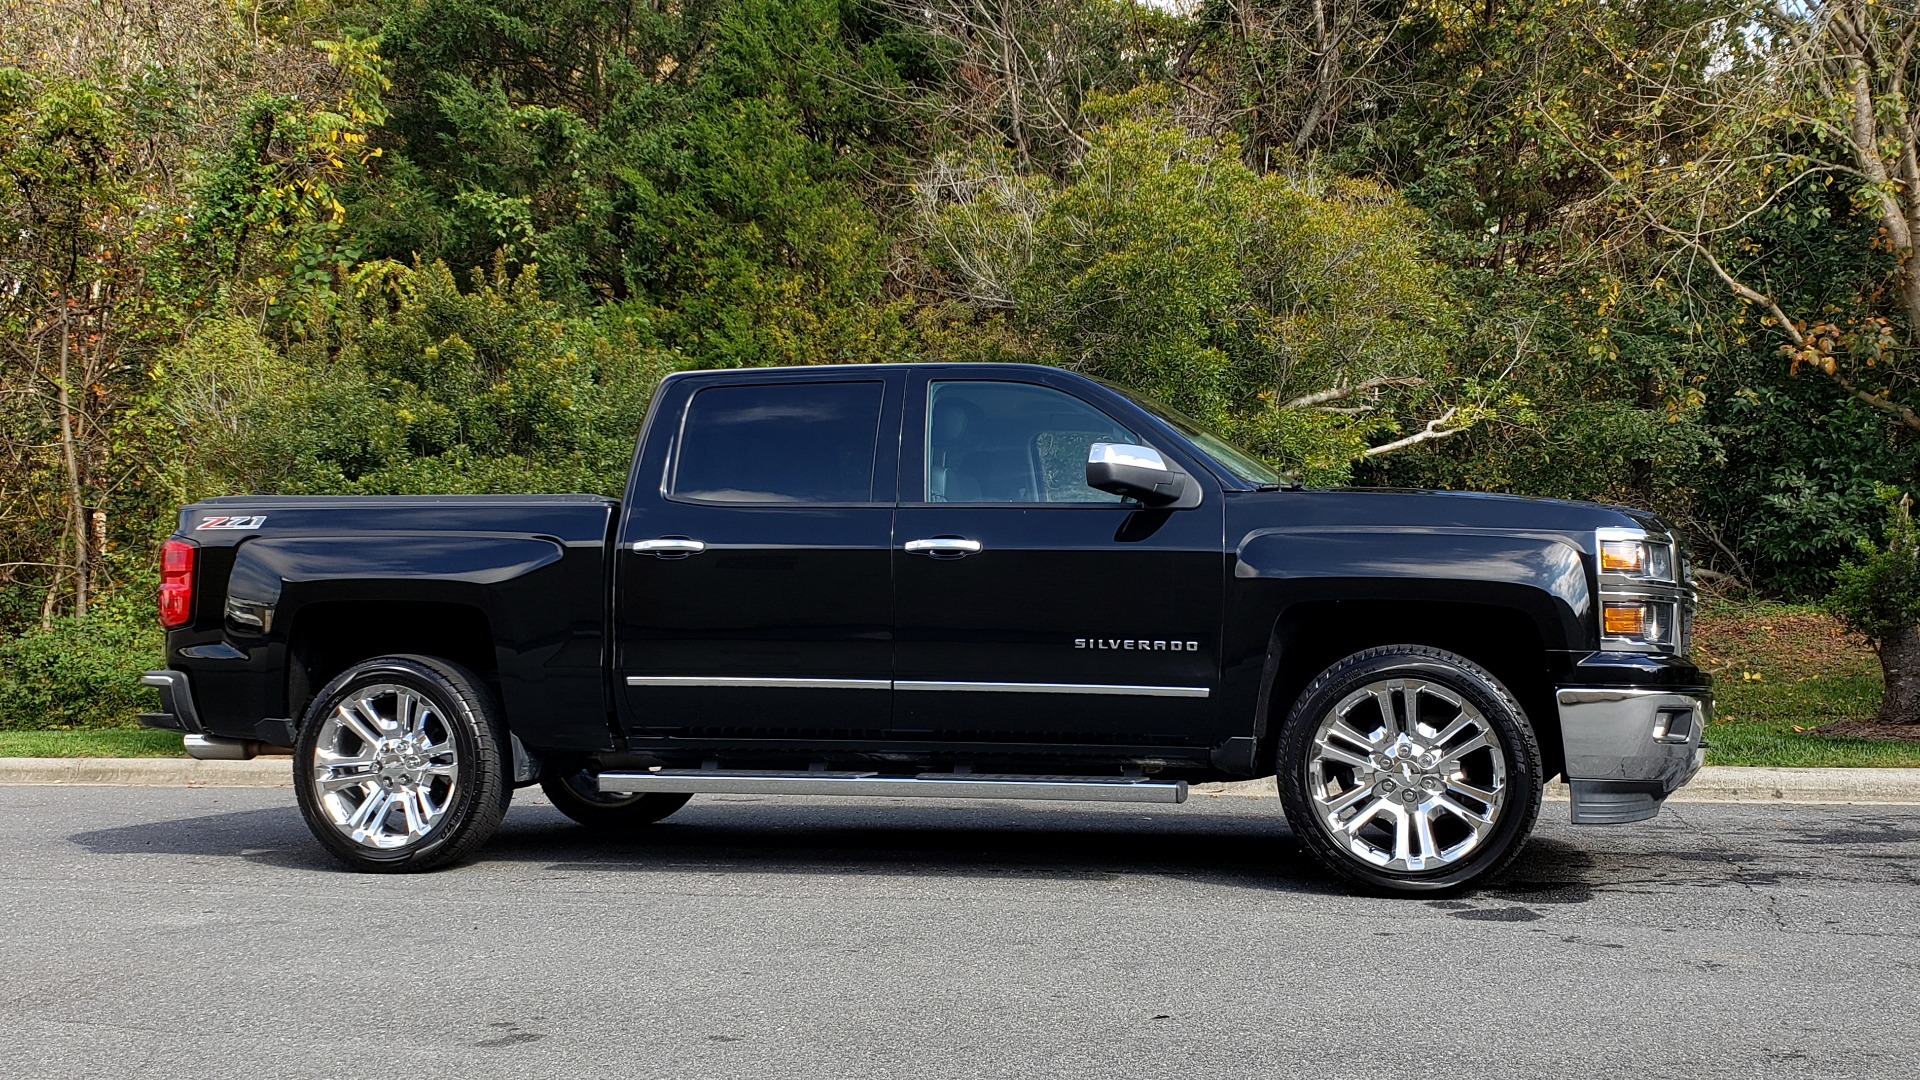 Used 2014 Chevrolet SILVERADO 1500 CREWCAB / LTZ PLUS PKG / 4WD / 2LZ / NAV / BOSE / REARVIEW for sale Sold at Formula Imports in Charlotte NC 28227 5